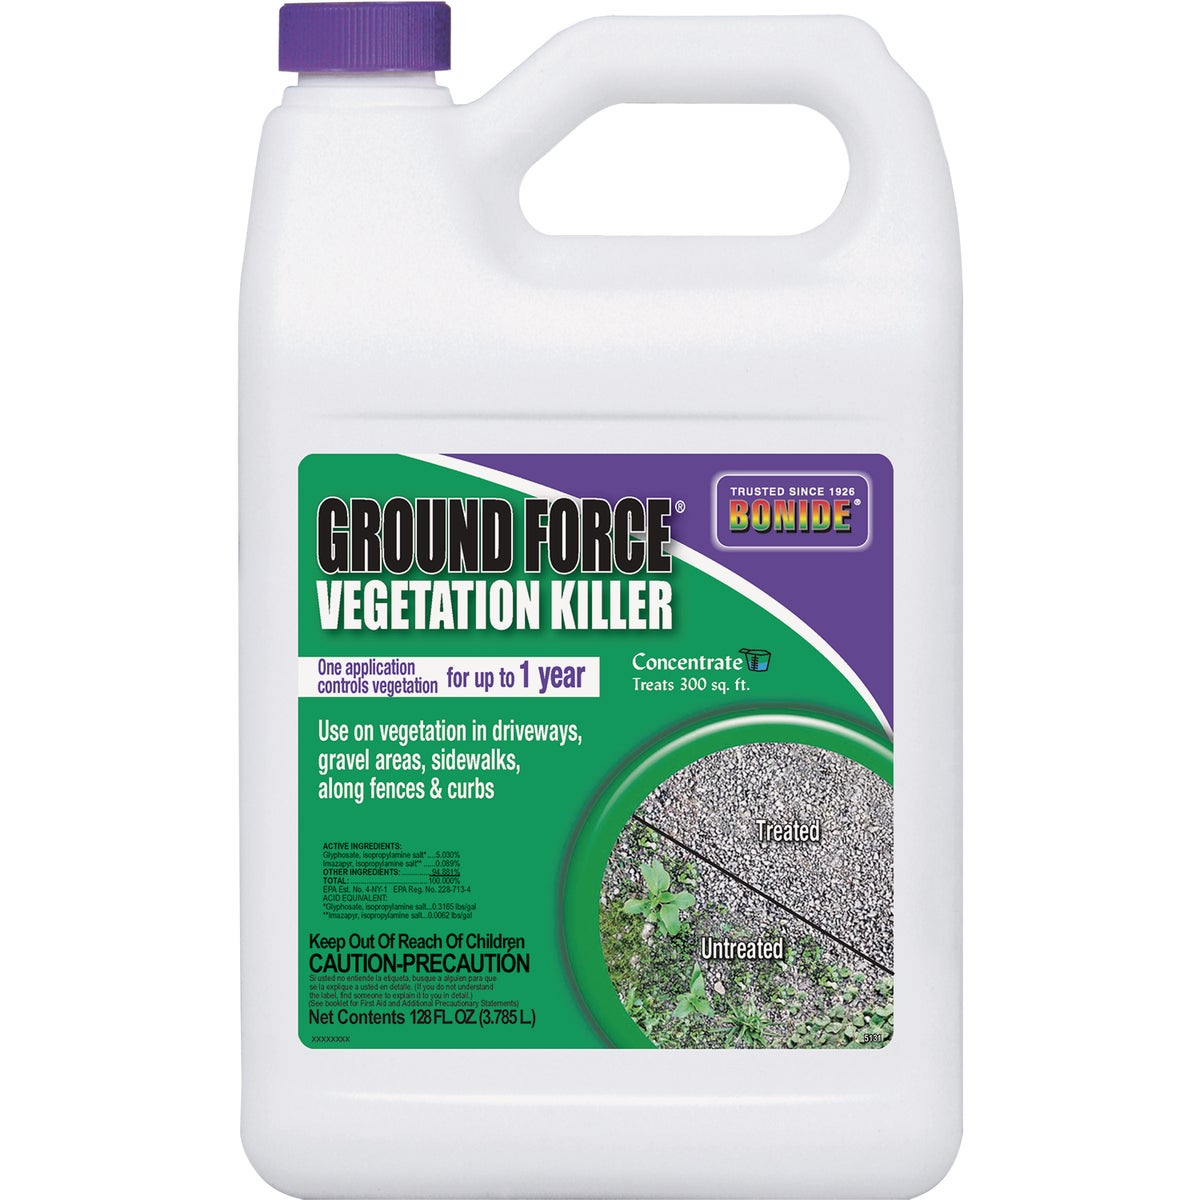 GAL VEGETATION KILLER - 5131 by Bonide